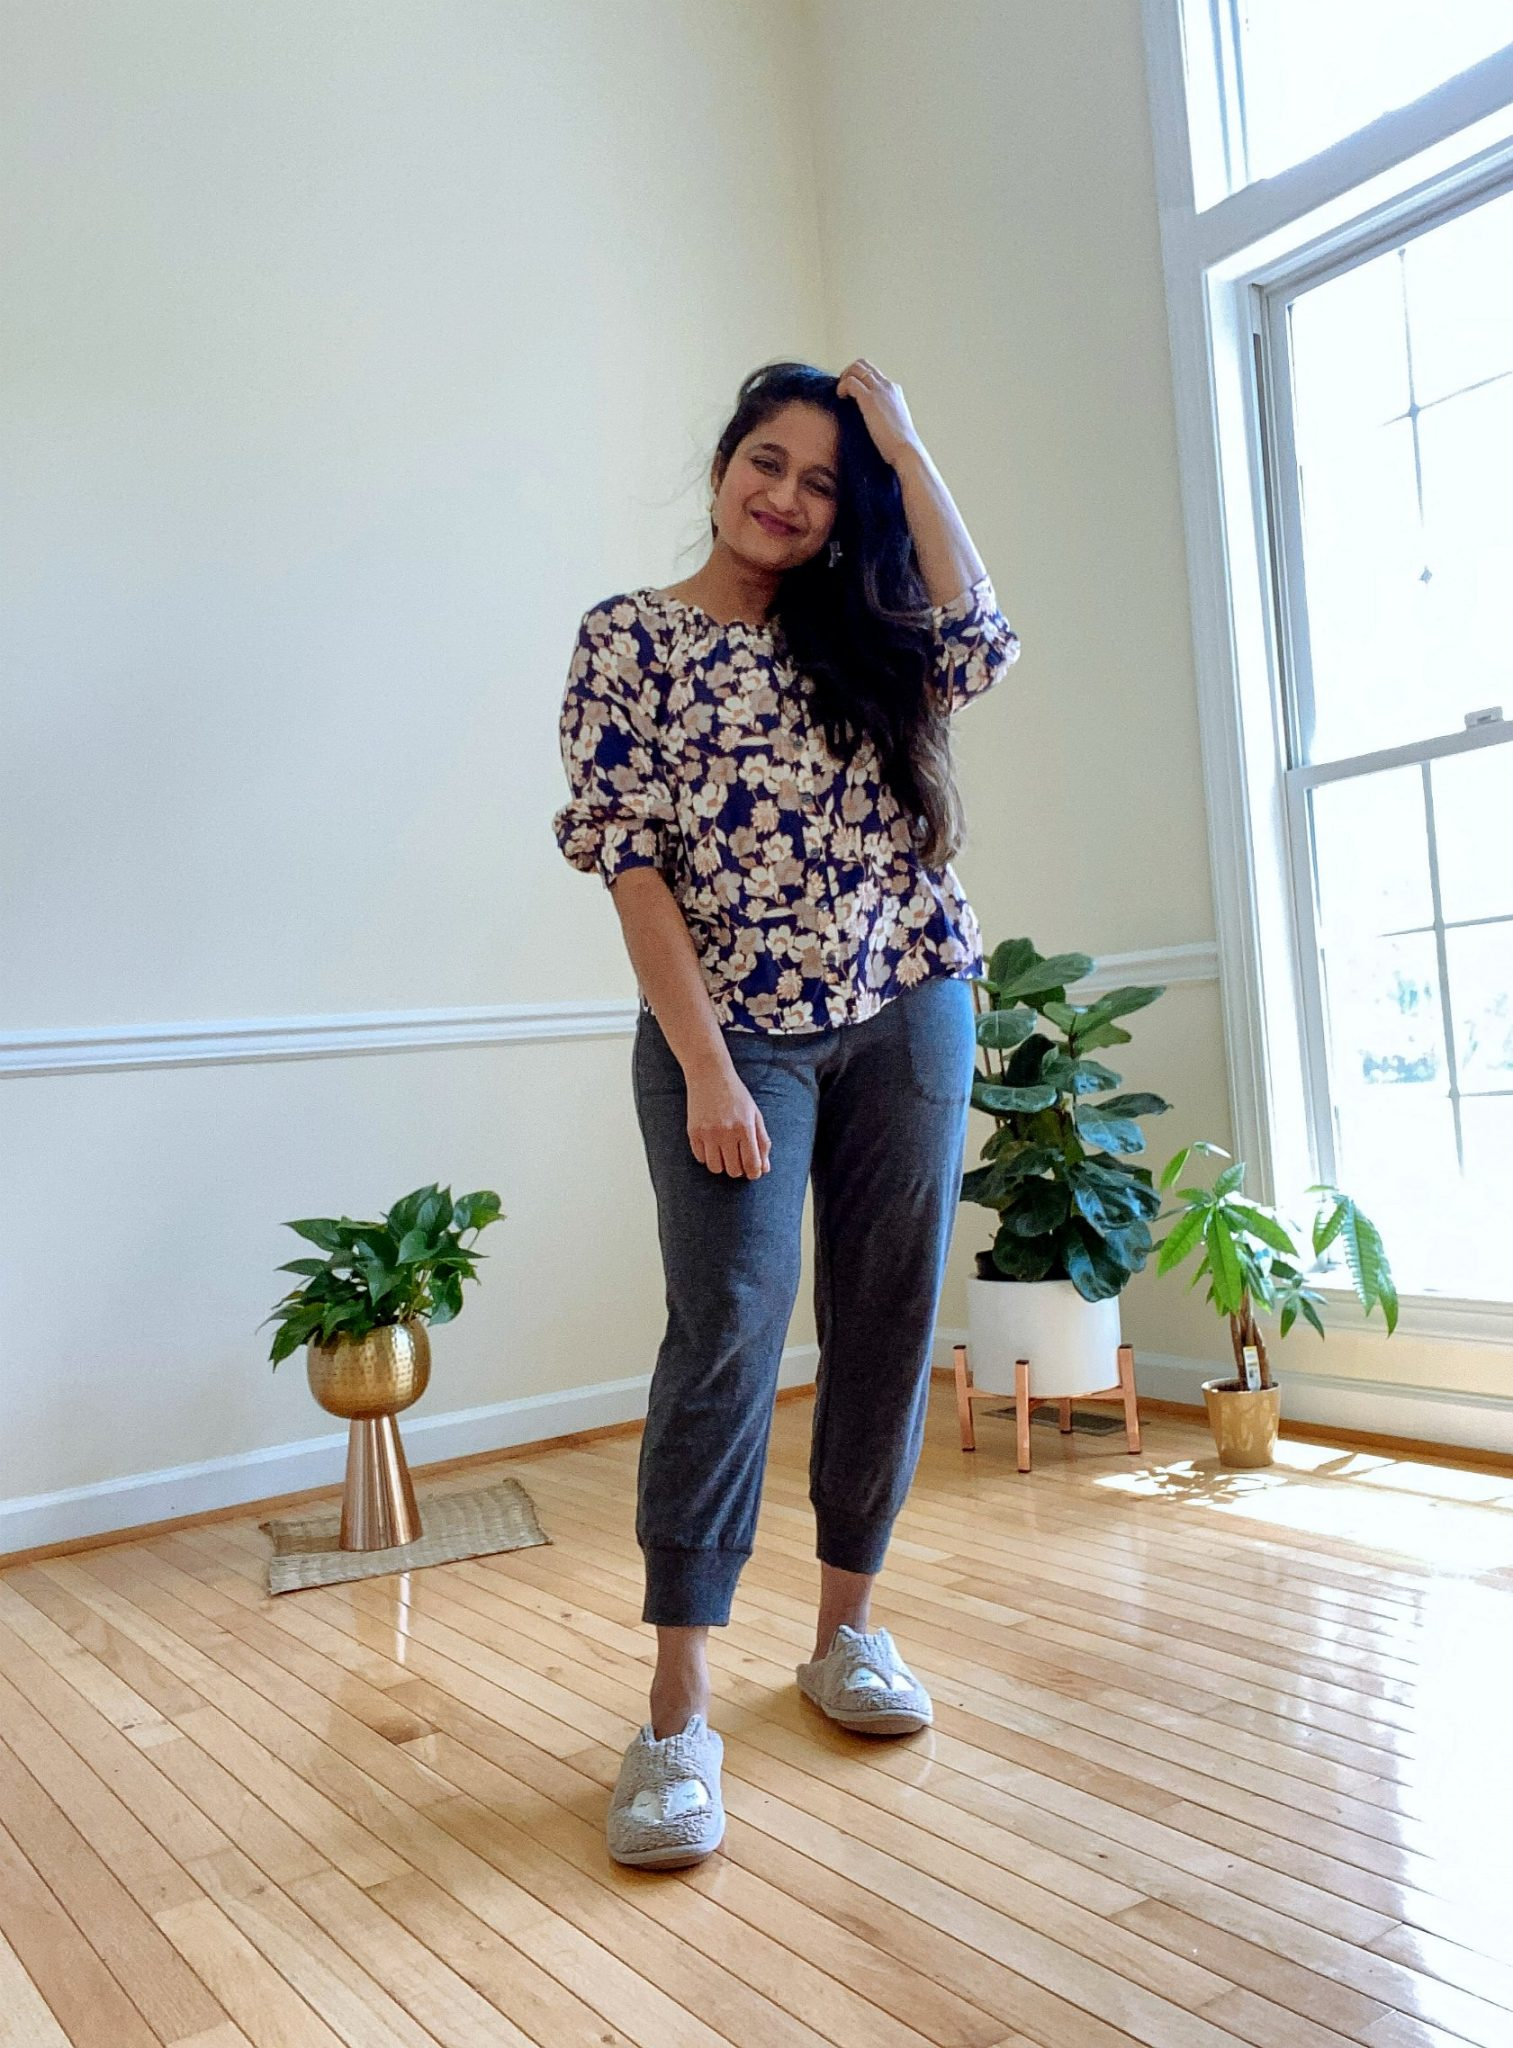 wearing Sactuary Enchanted Floral Blouse, Amazon Essentials Women's Studio Terry Capri Jogger Pant | Casual Outfits by popular Maryland lifestyle blog, Dreaming Loud: image of a woman wearing a Sactuary Enchanted Floral Blouse, and Amazon Essentials Women's Studio Terry Capri Jogger Pant.